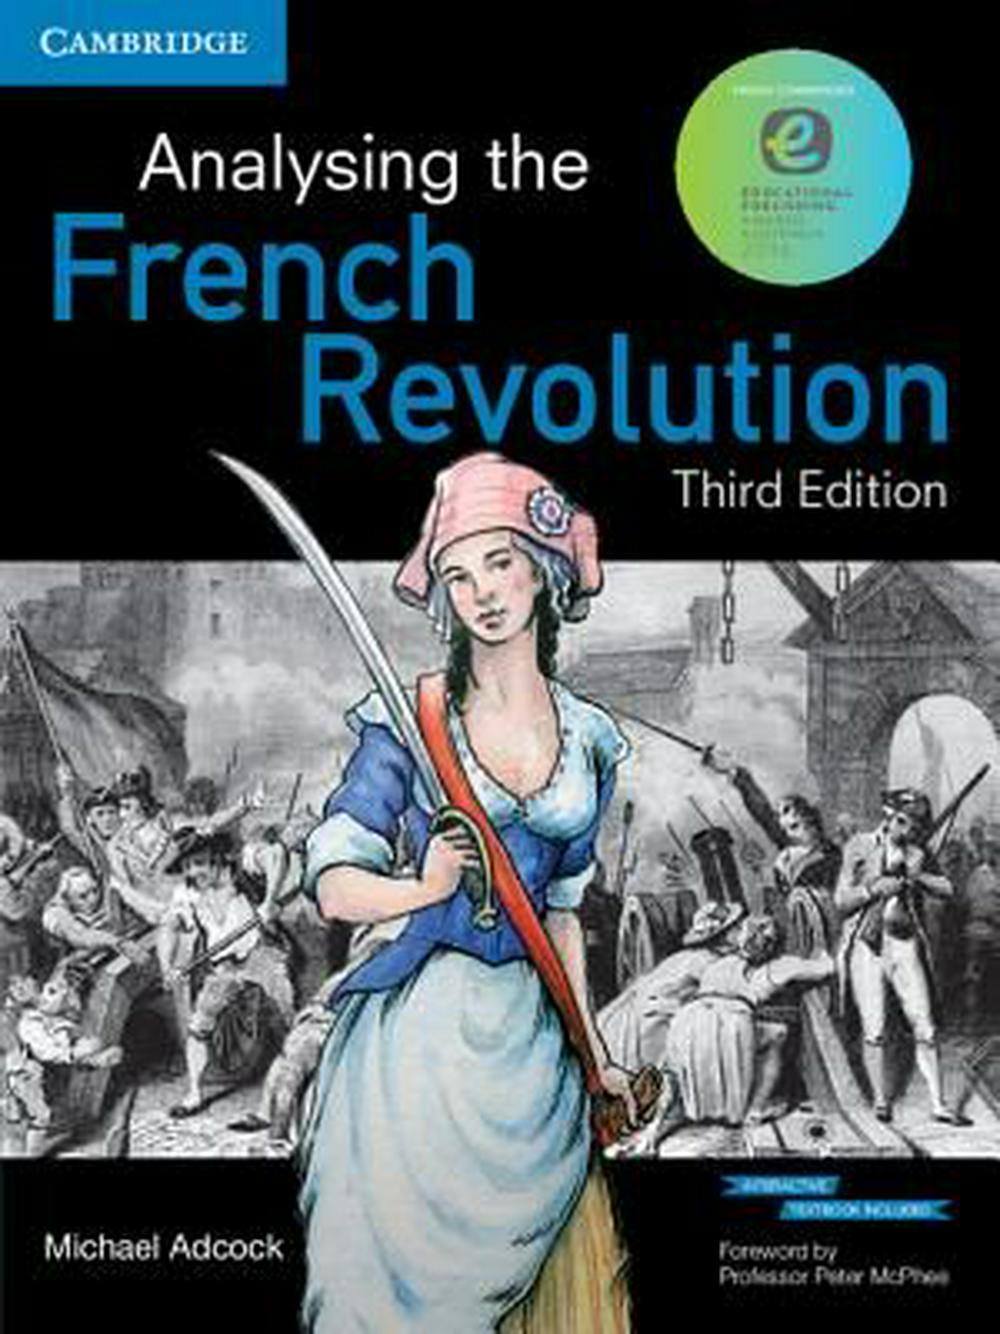 Analysing the French Revolution 3rd edition Pack (Textbook and Interactive textbook) by Michael Adcock, ISBN: 9781107506442